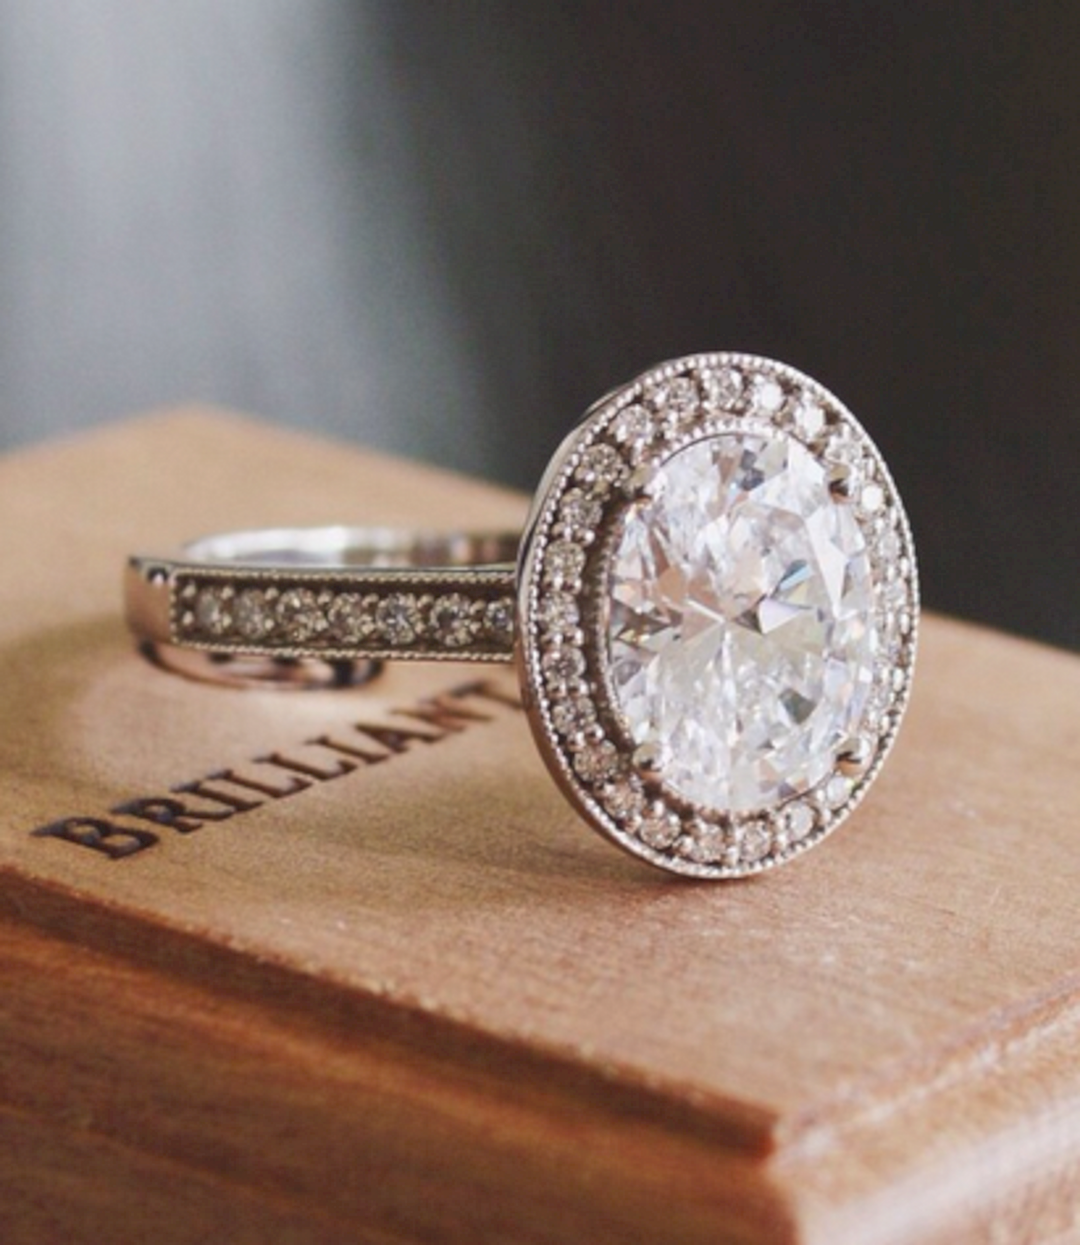 8 Most Beautiful Vintage And Antique Engagement Rings Antique Wedding Rings Antique Engagement Rings Wedding Rings Vintage